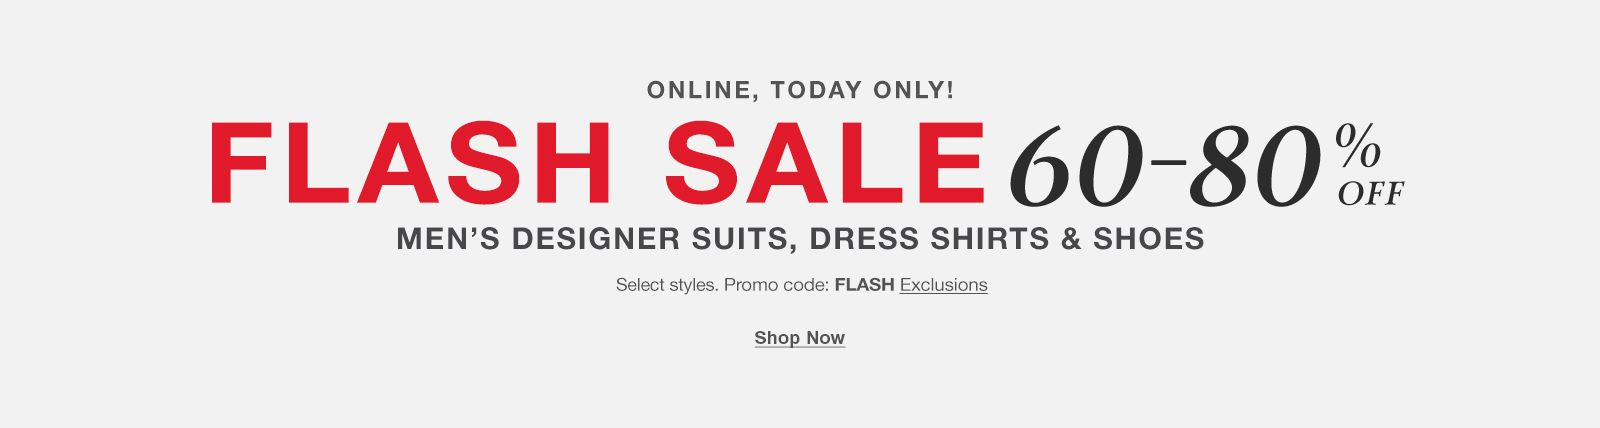 Online, Today only! Flash sale 60-80 percent off, Men's Designer Suits, Dress Shirts and Shoes, Select style, Promo code: FLASH Exclusions, Shop Now